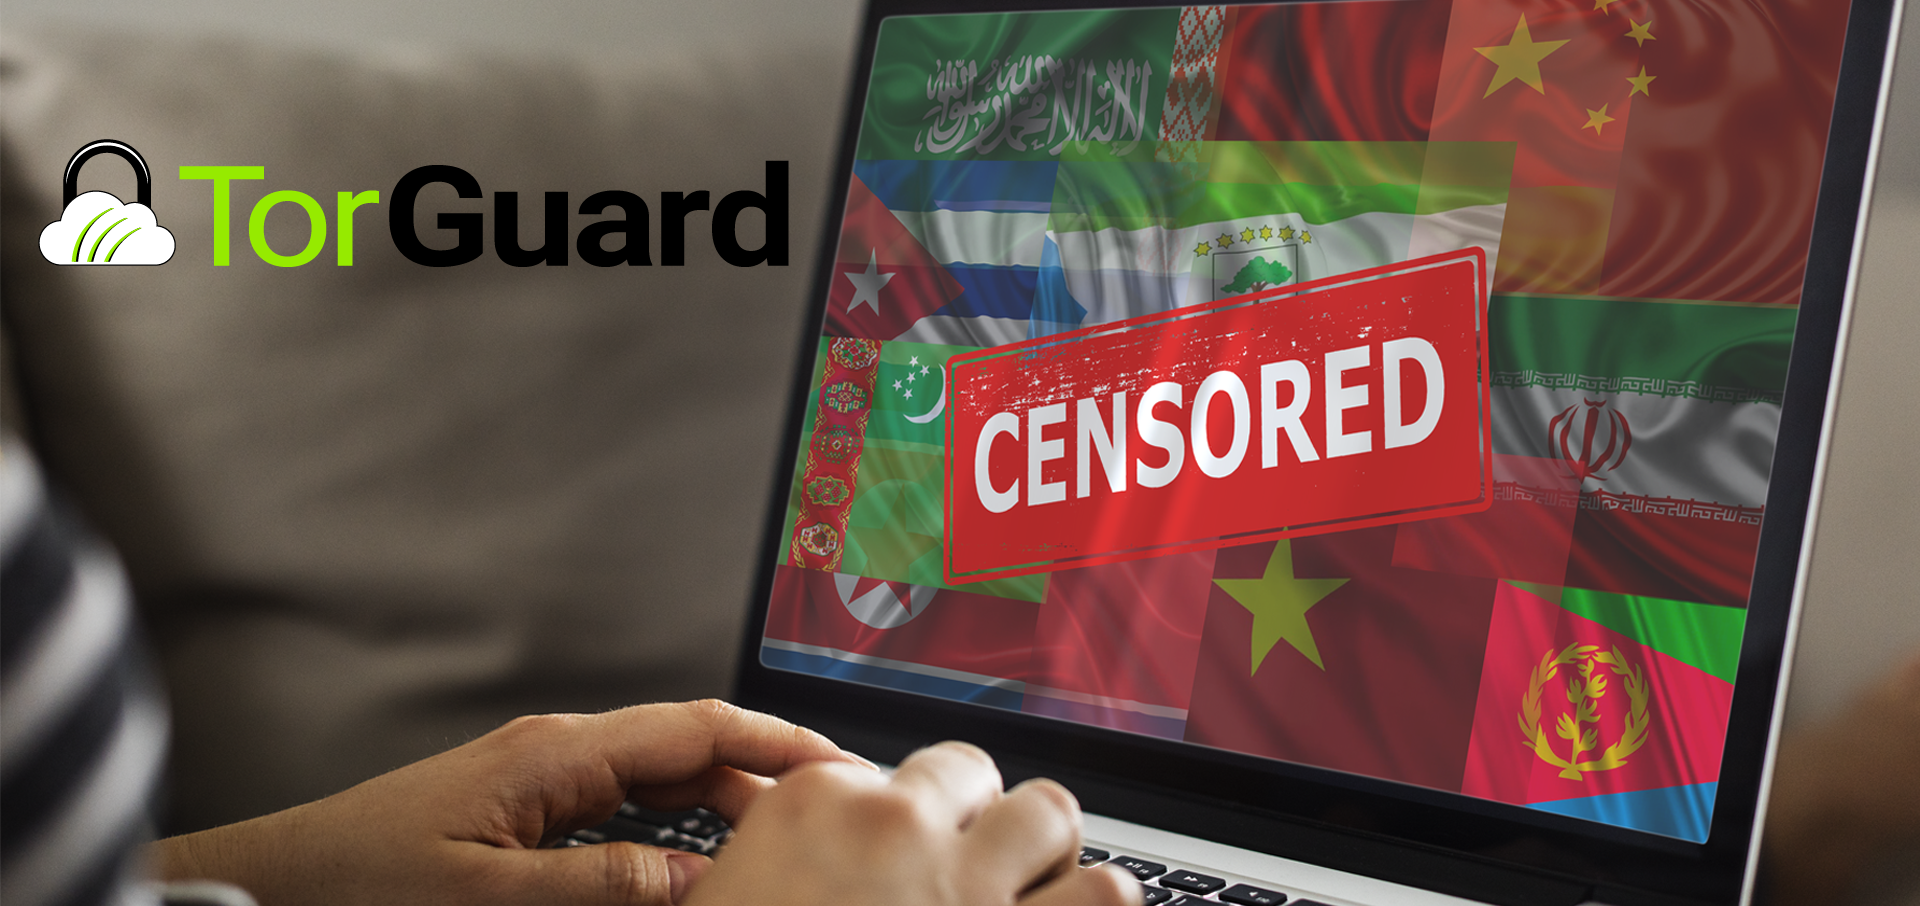 10 Countries with Extreme Media Censorship